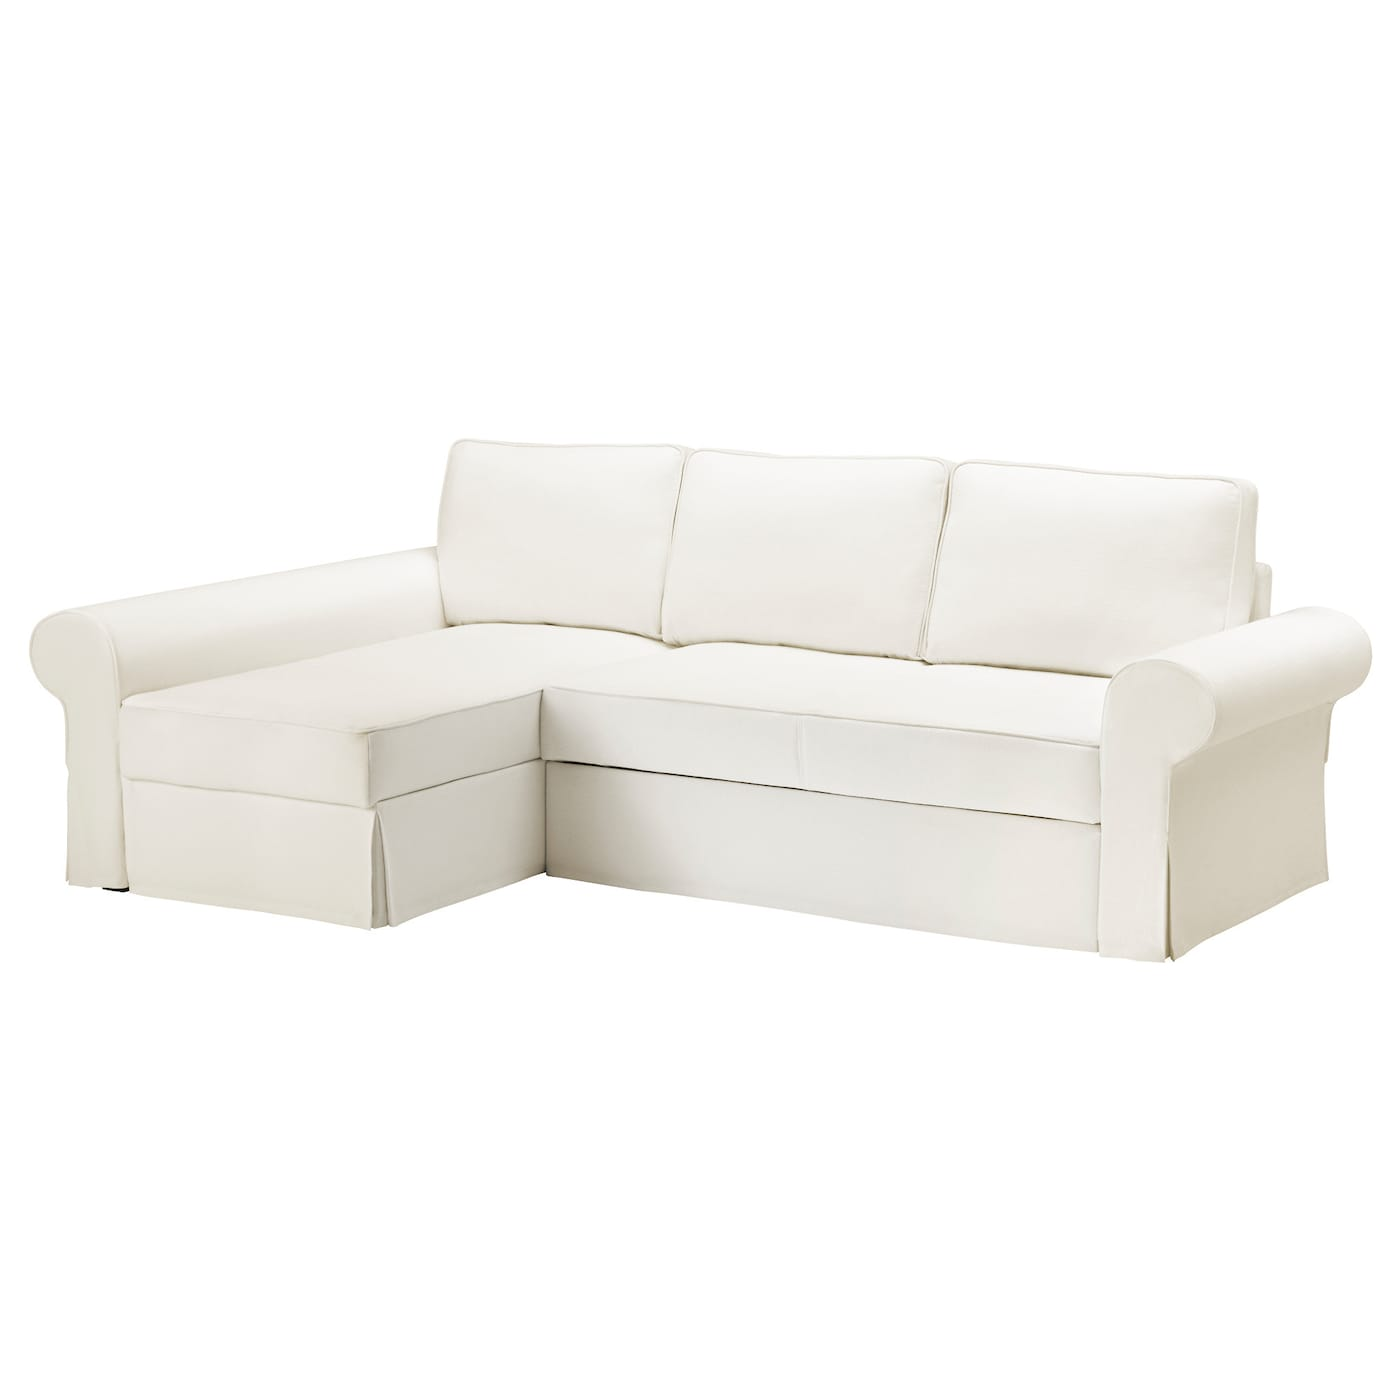 Backabro cover sofa bed with chaise longue hylte white ikea for Chaise longue jardin ikea